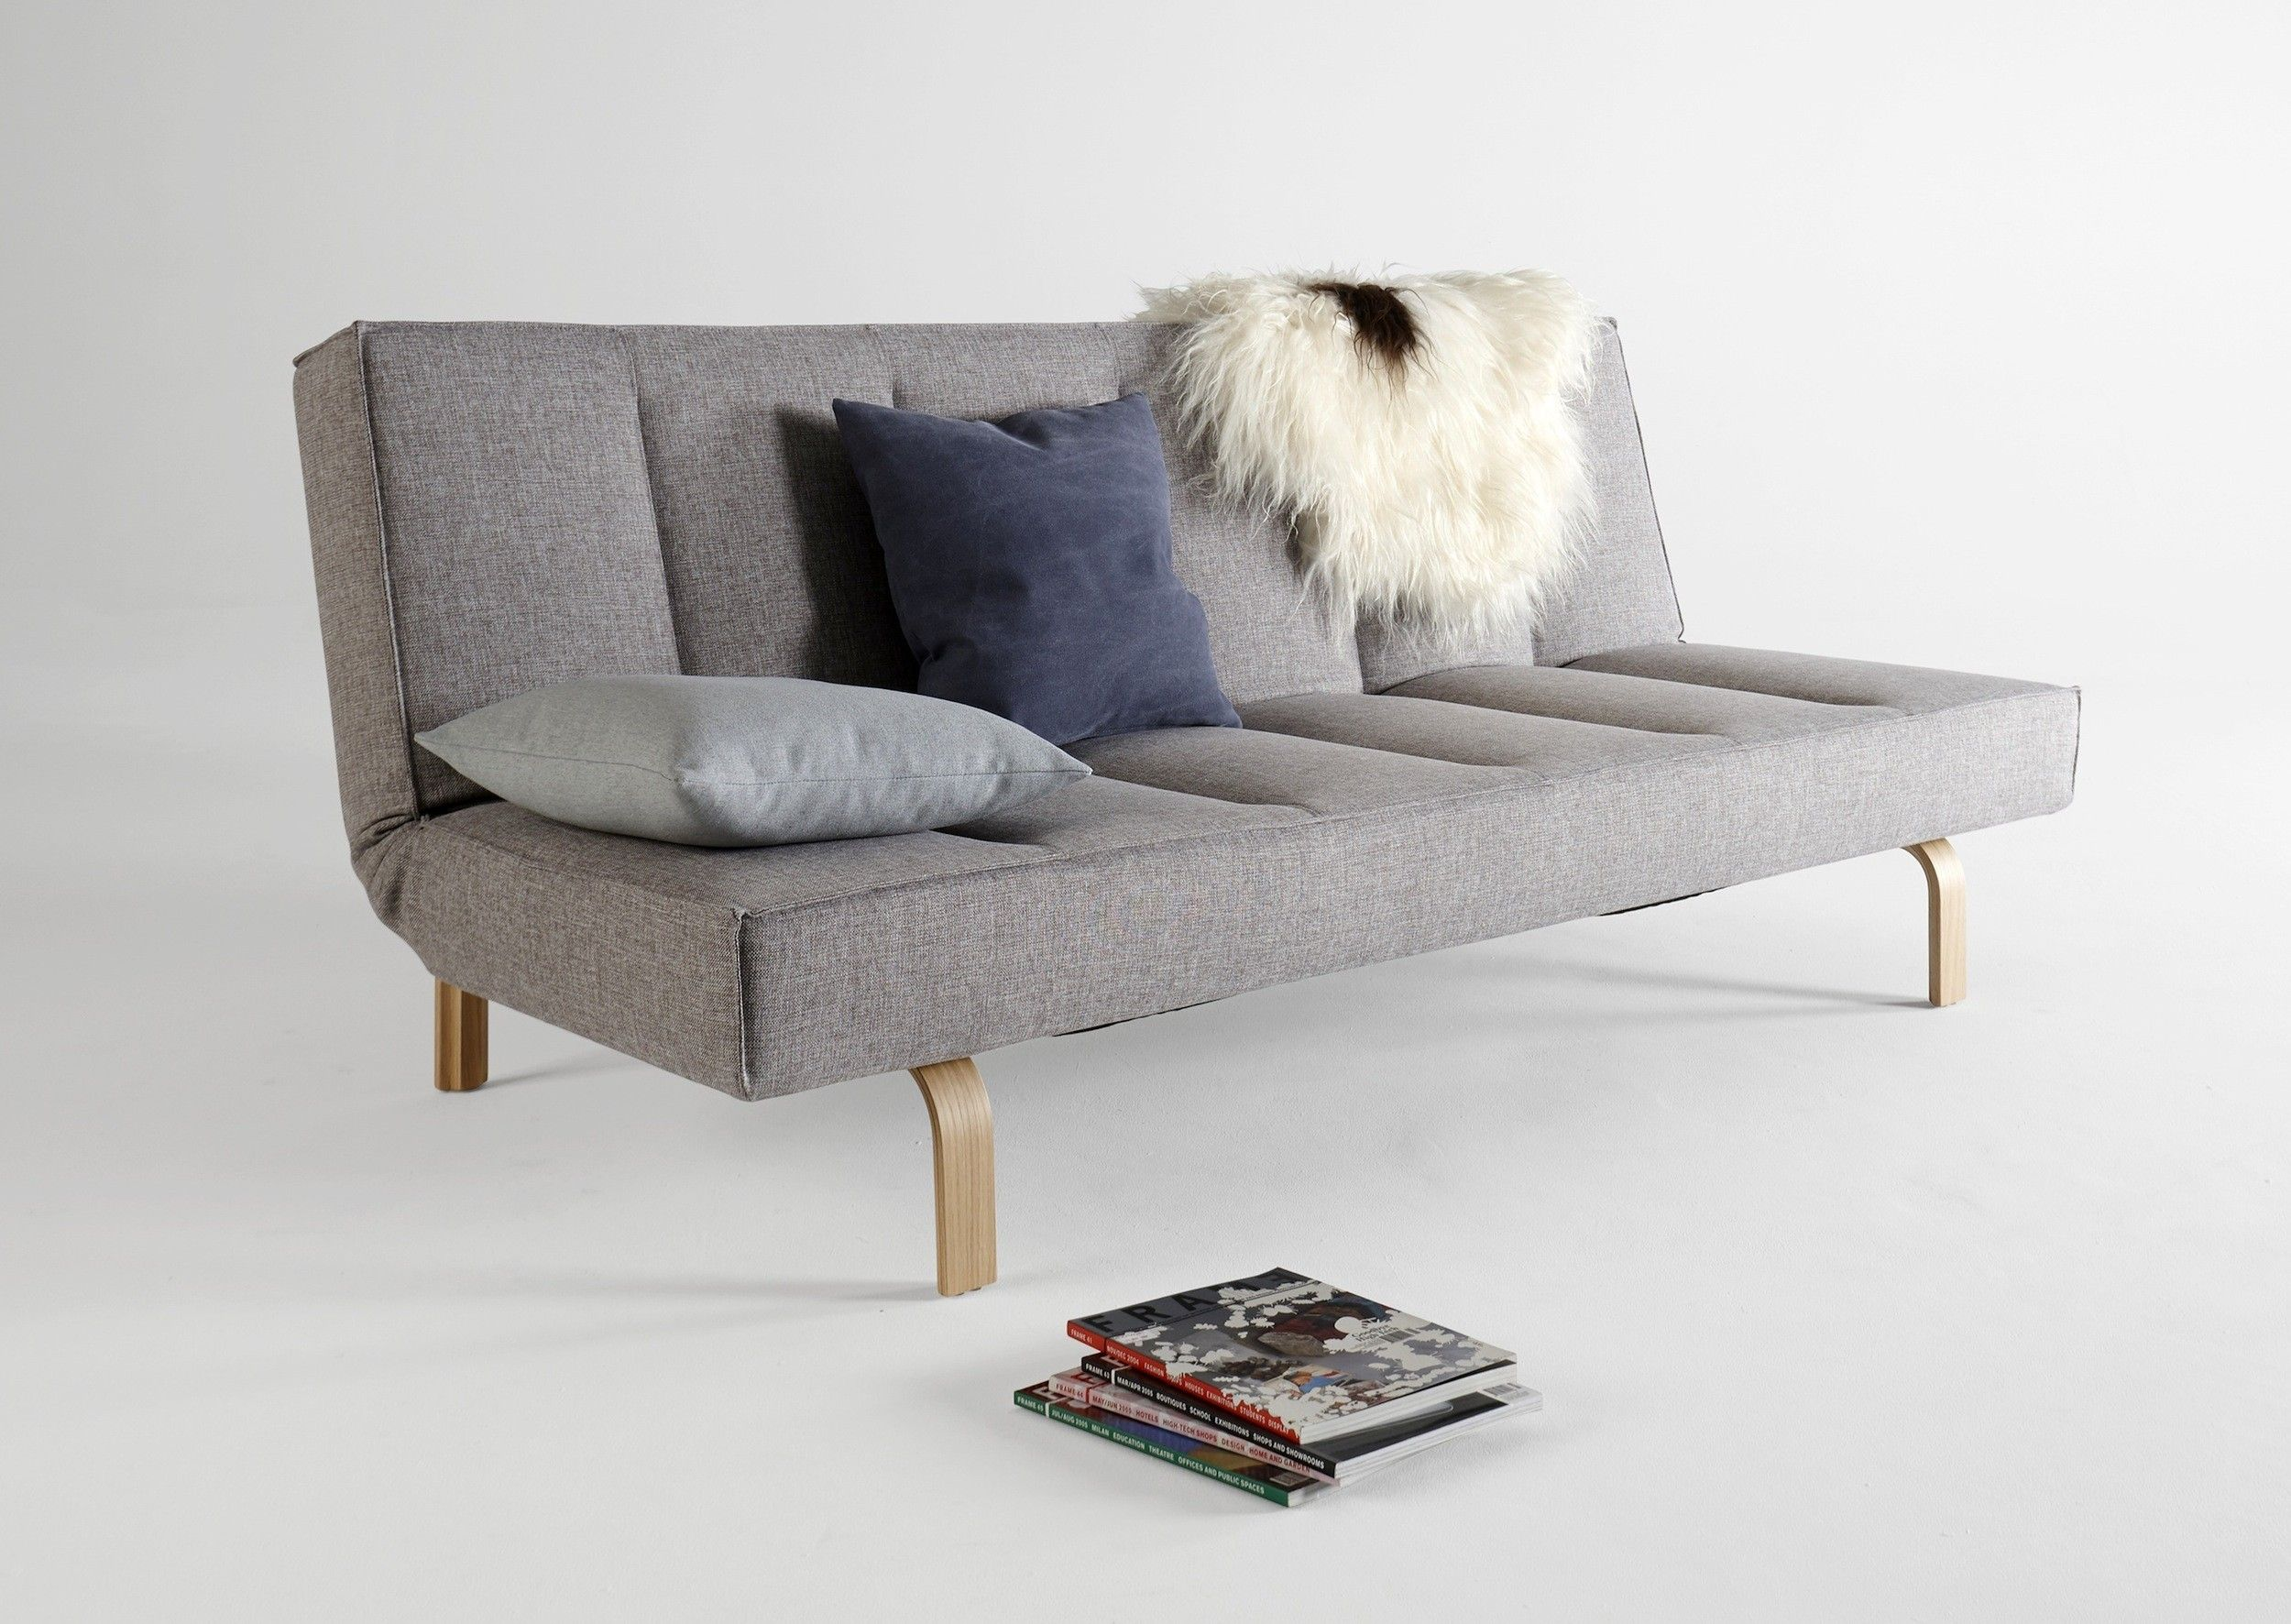 Single Sofa Beds Odin King Single Sofa Bed Innovation Living Innovation Living